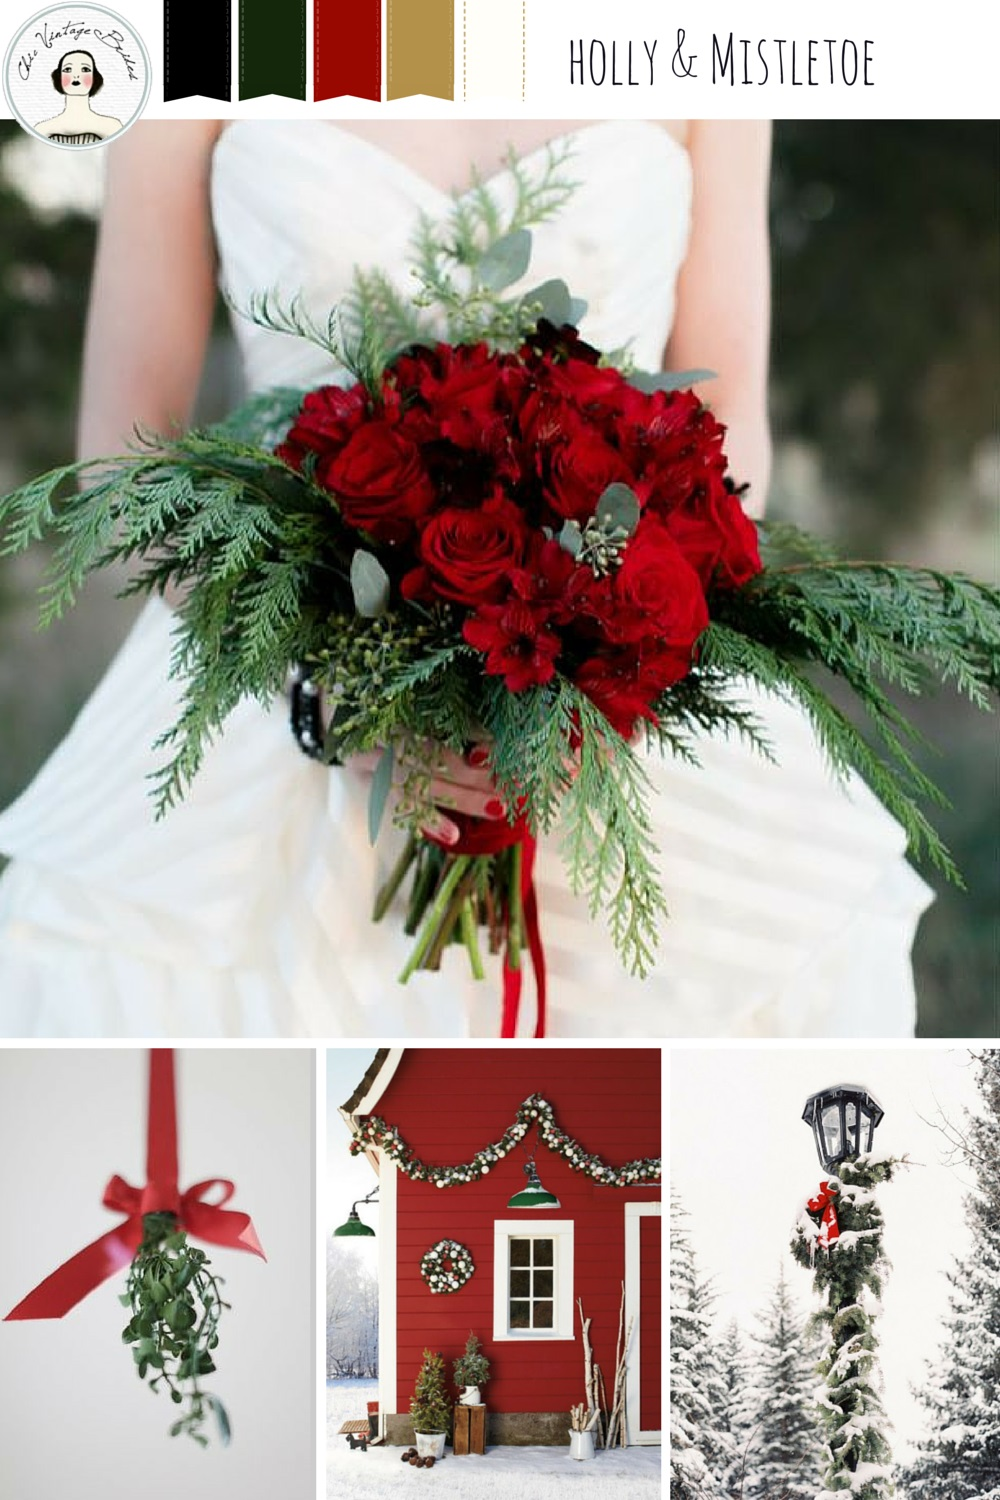 Holly & Mistletoe - Christmas Wedding Inspiration in Rich Shades of Red, Gold & Green